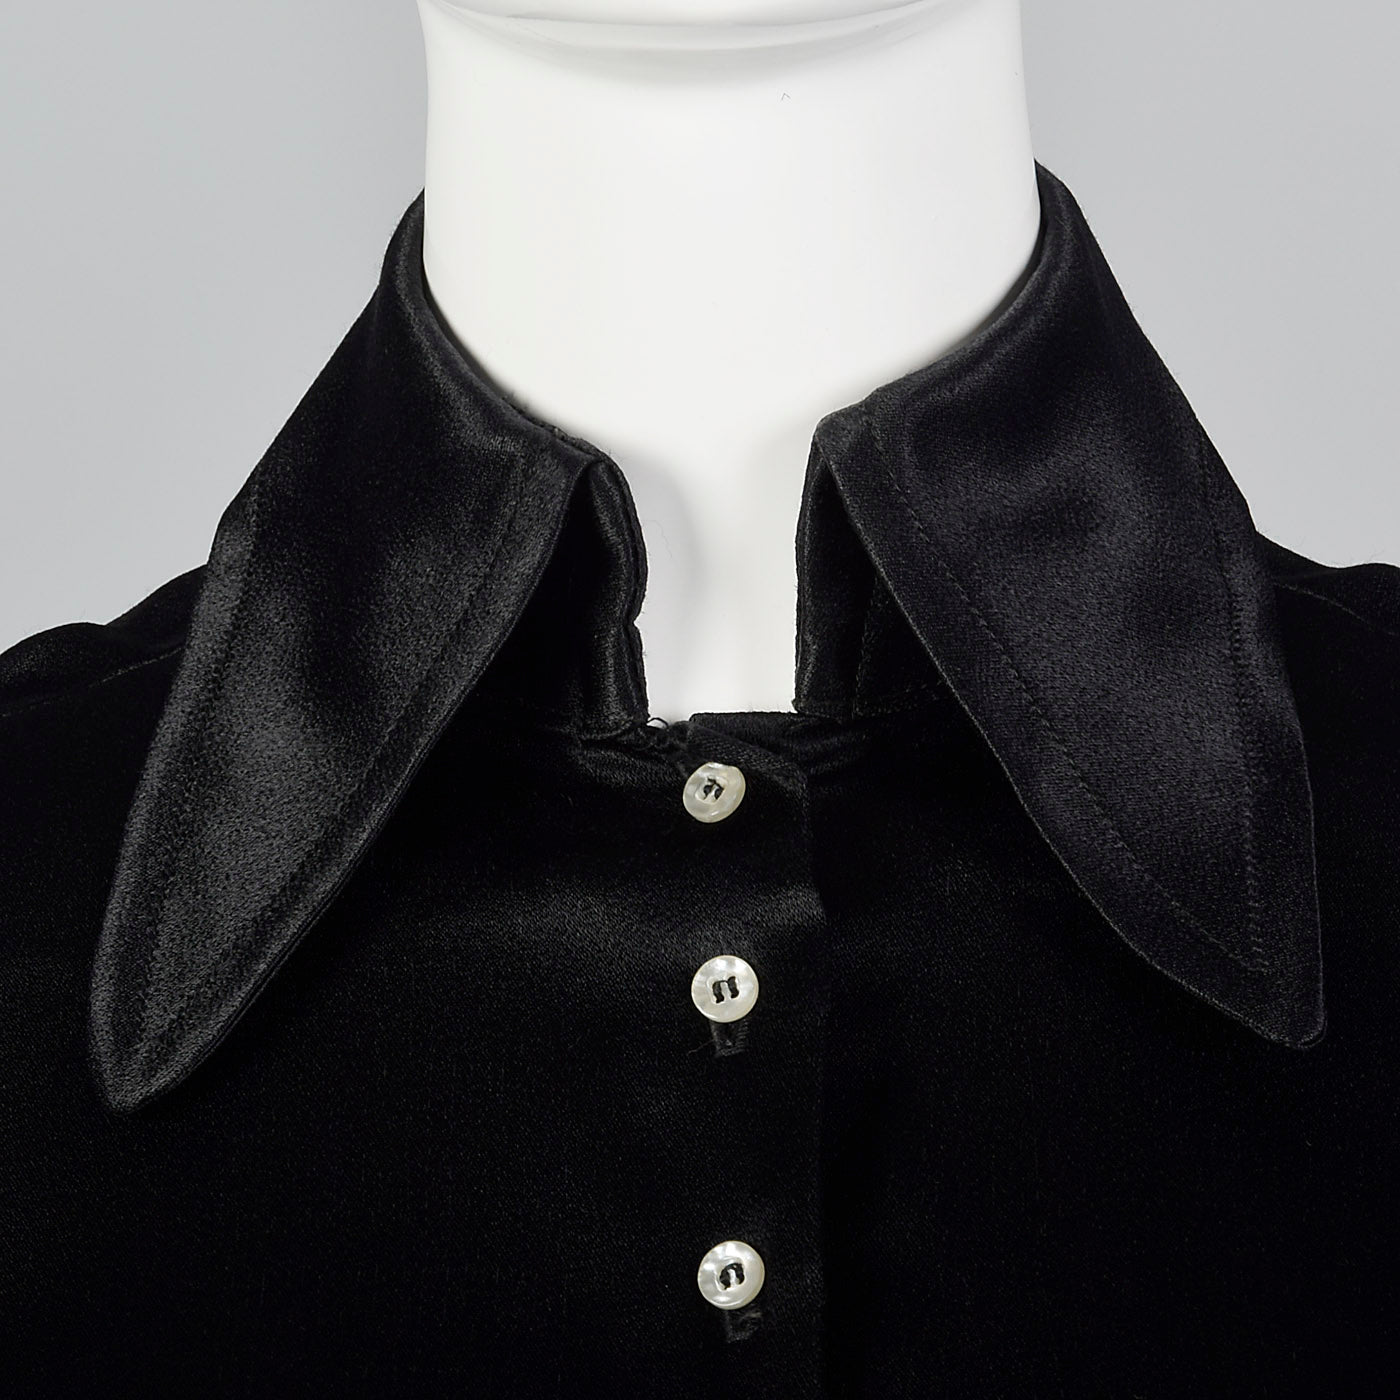 1970s Saks Fifth Avenue Black Satin Blouse